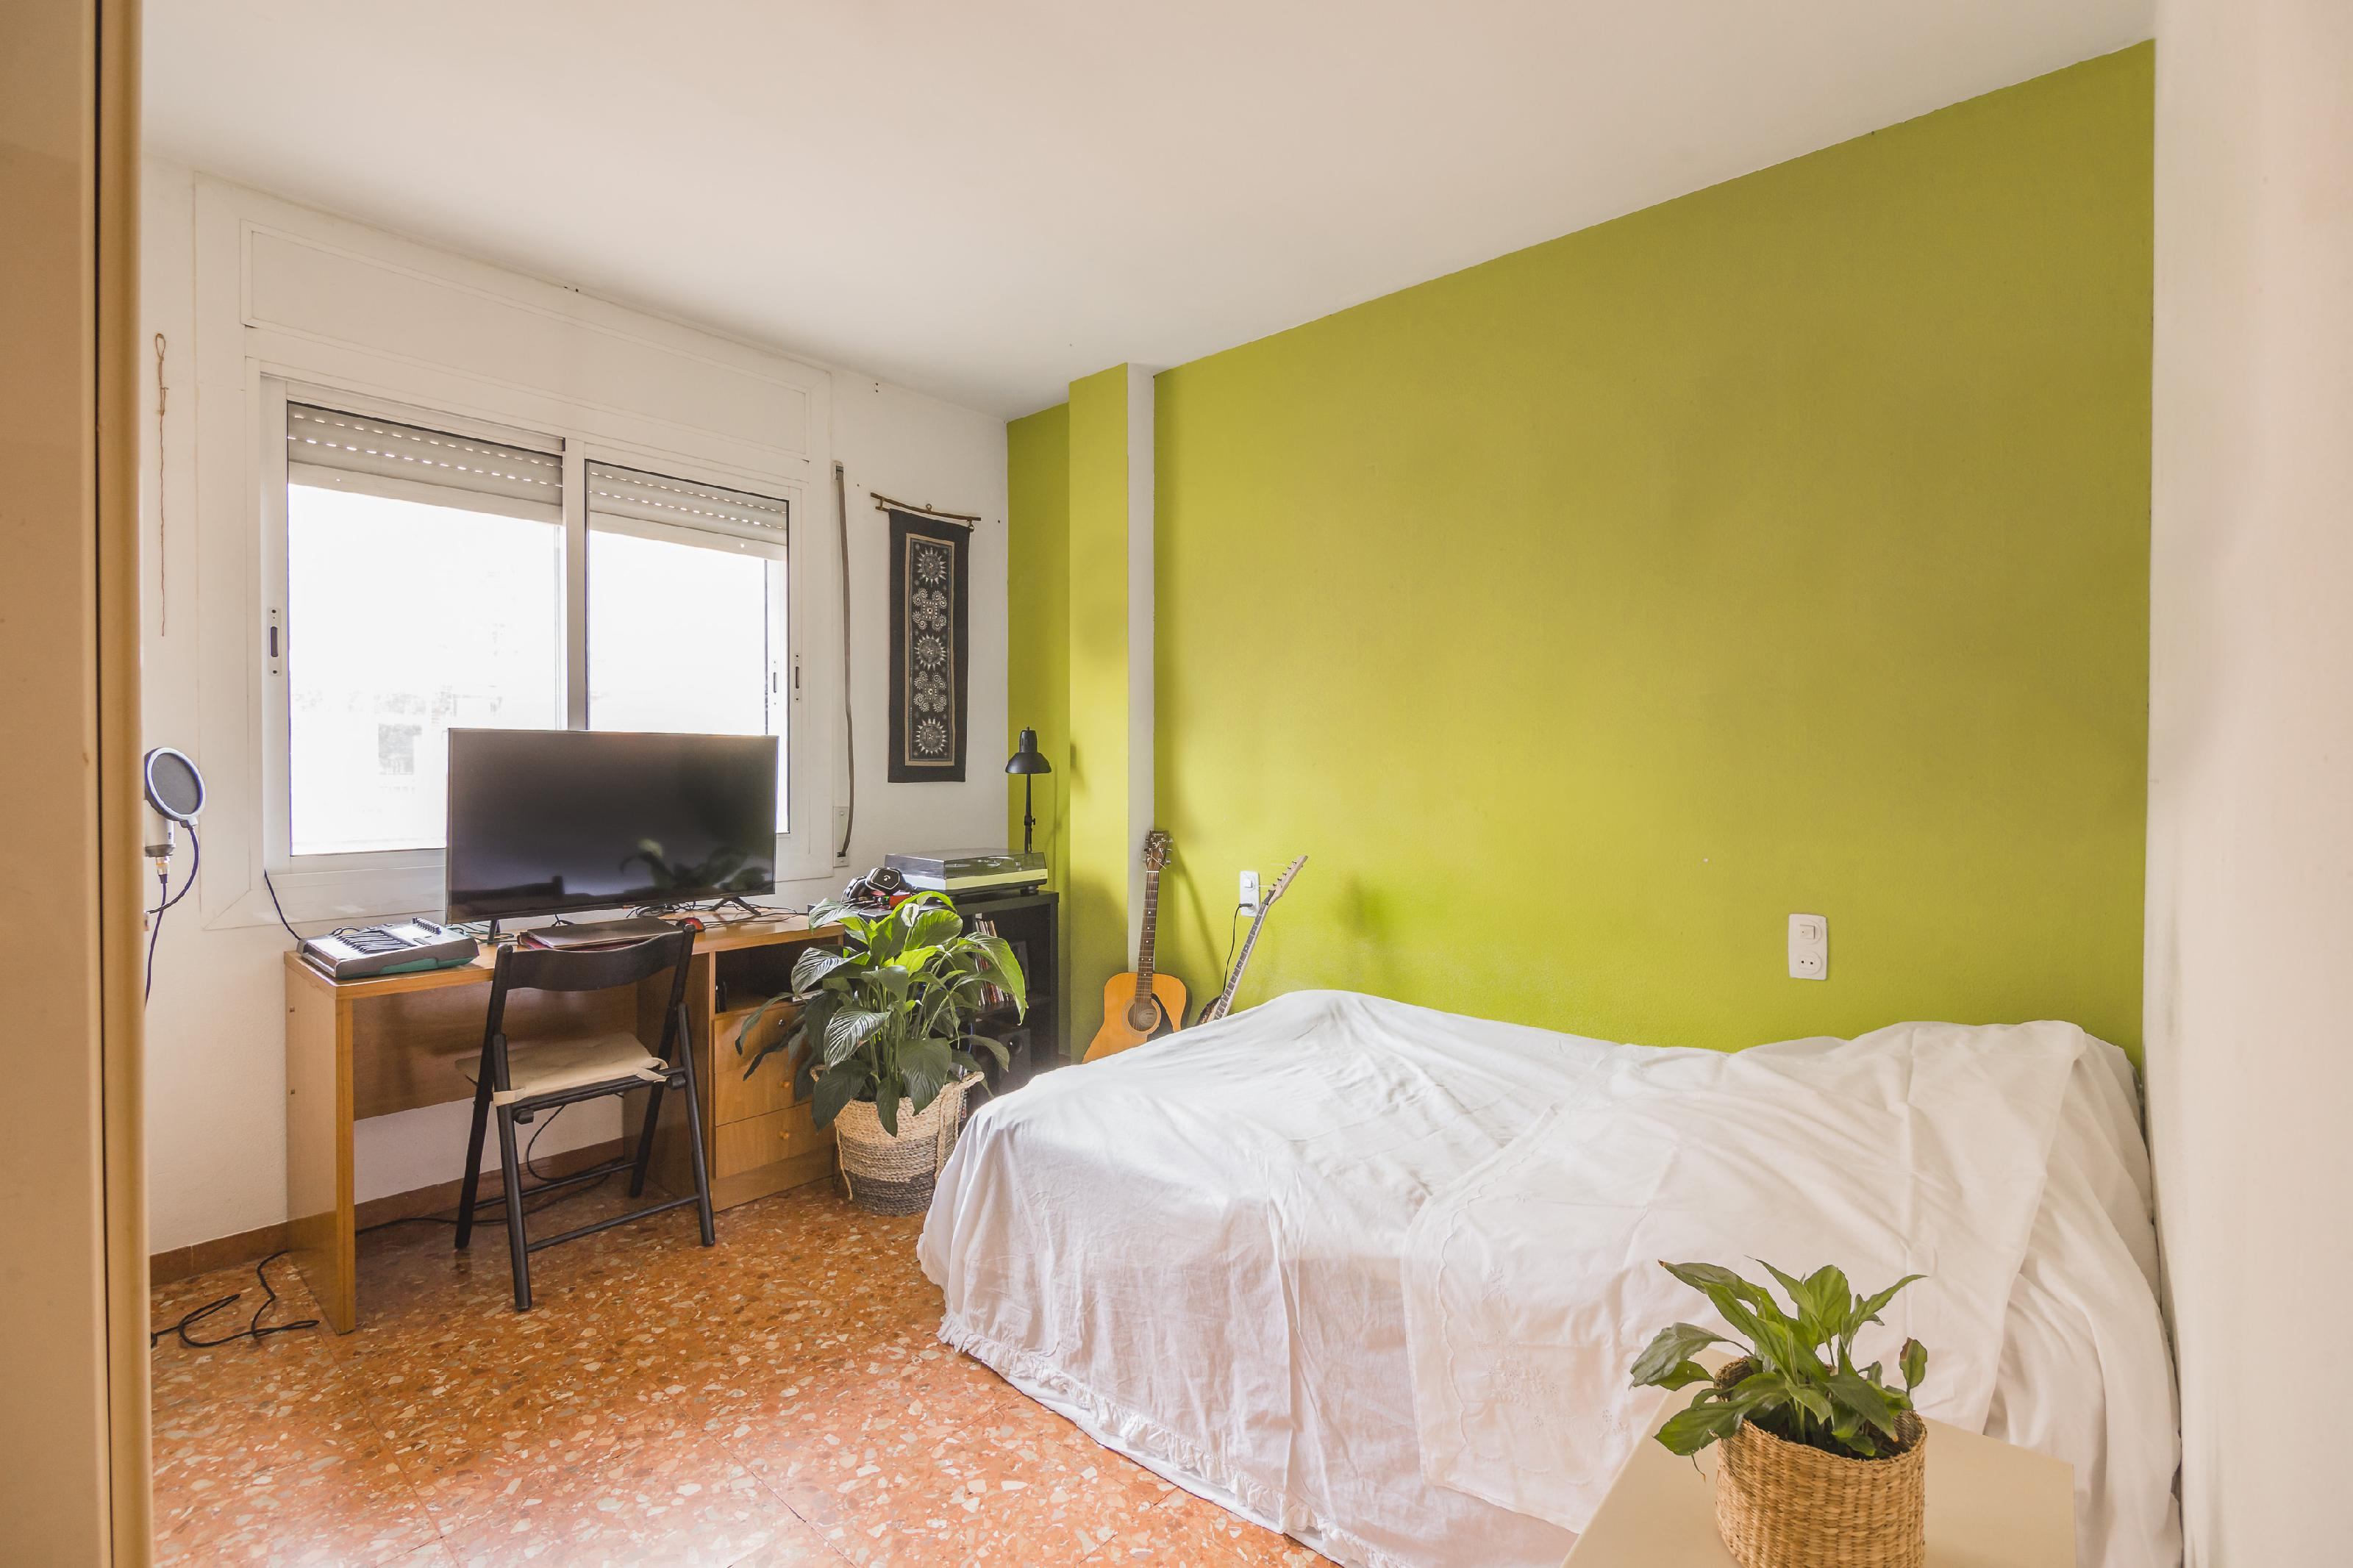 239426 Flat for sale in Les Corts, Les Corts 12